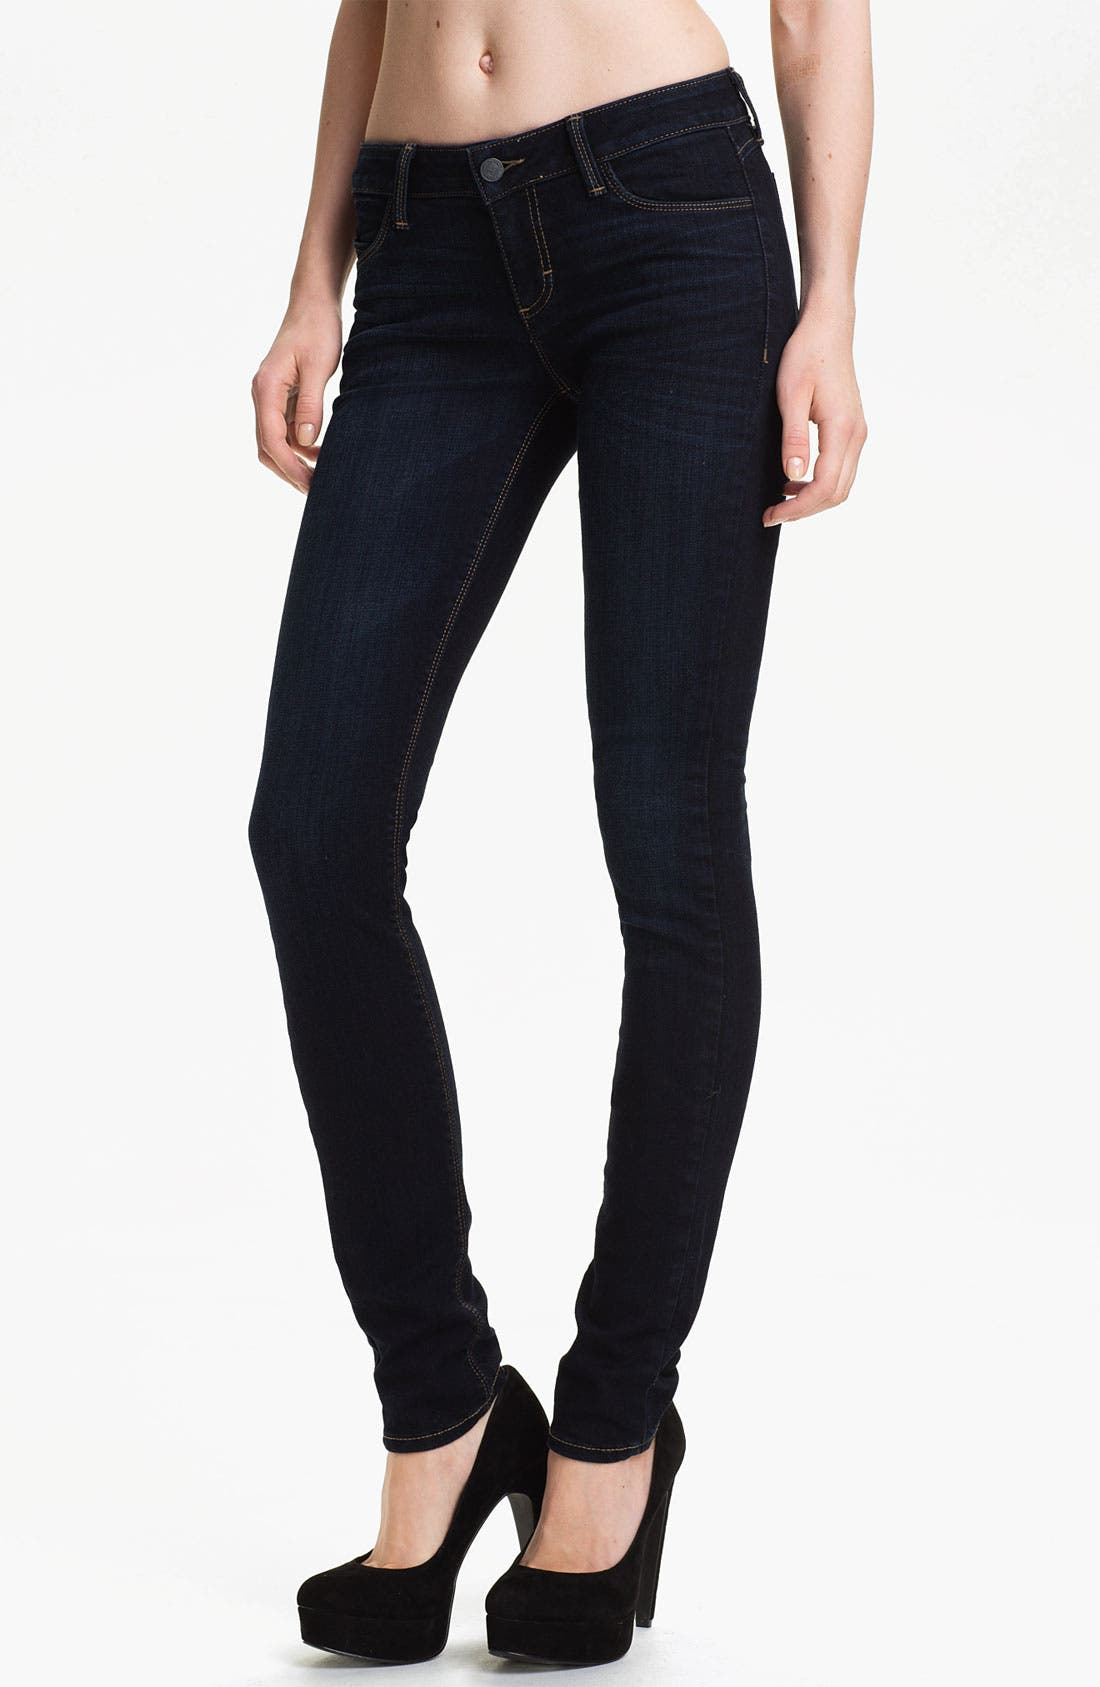 Alternate Image 1 Selected - Siwy 'Leona' Skinny Stretch Jeans (Let Your Love Flow)